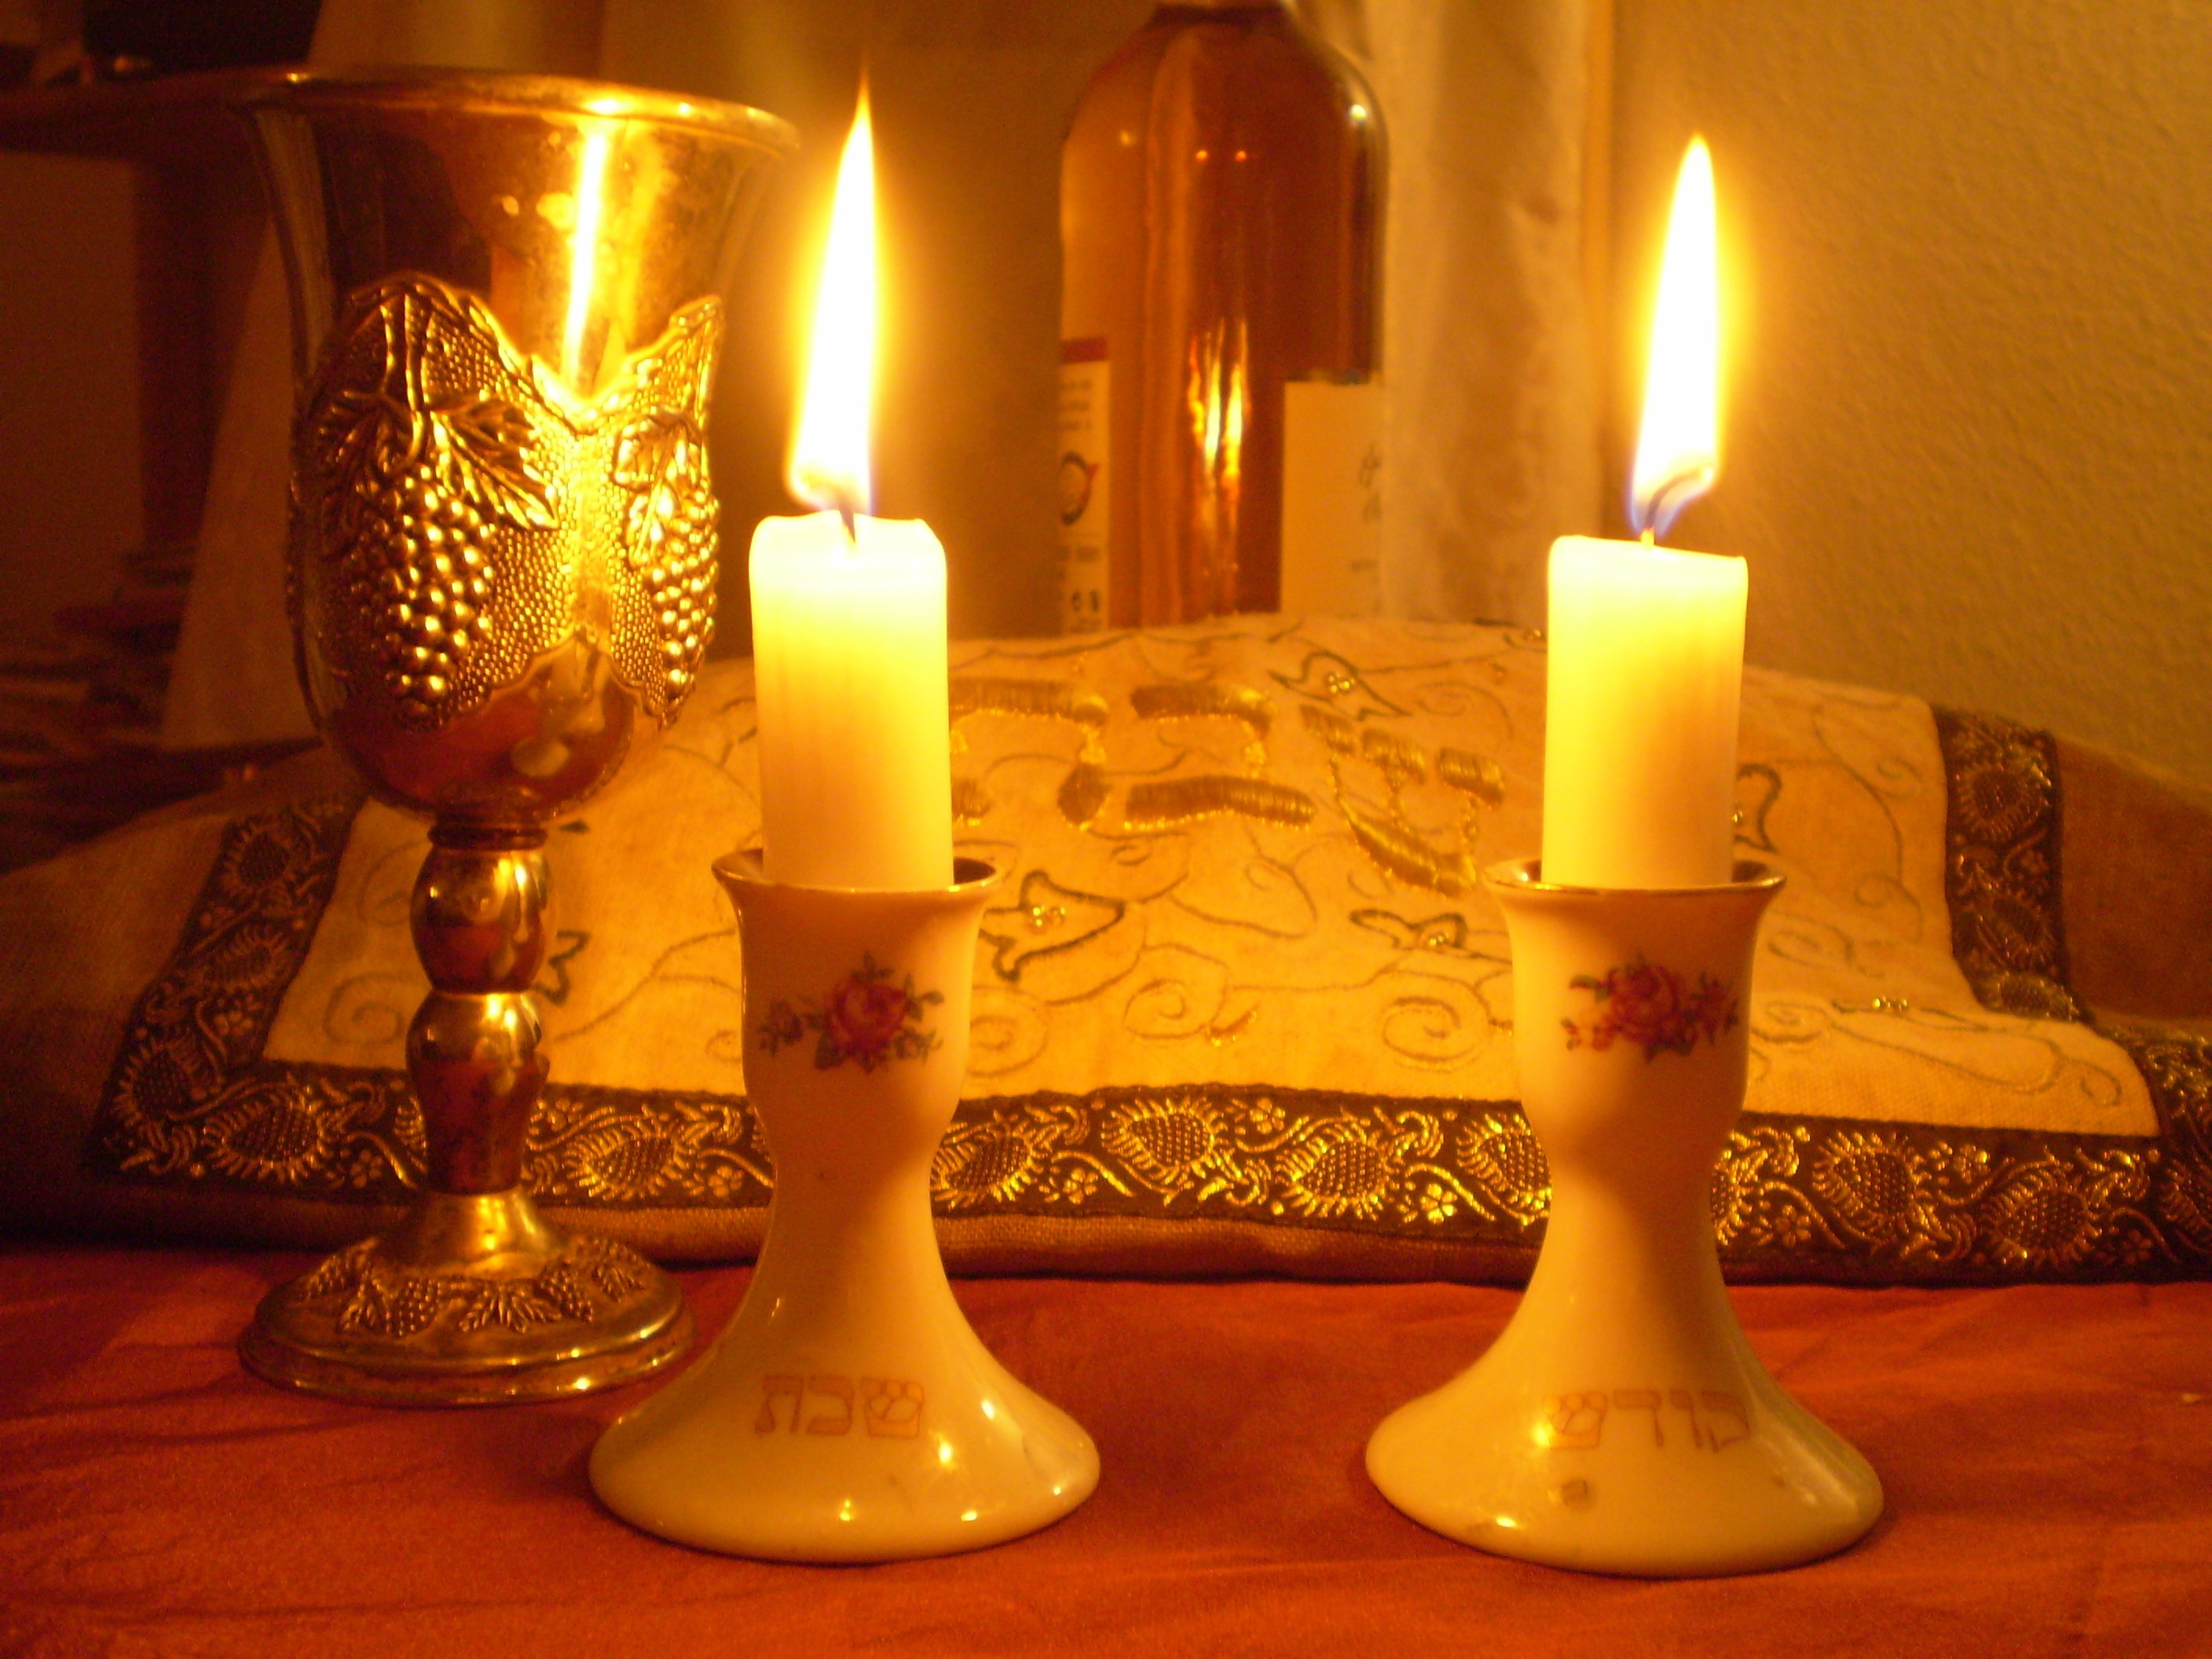 """Shabbat Candles"" by Olaf.herfurth - Own work. Licensed under CC BY-SA 3.0 via Wikimedia Commons -"